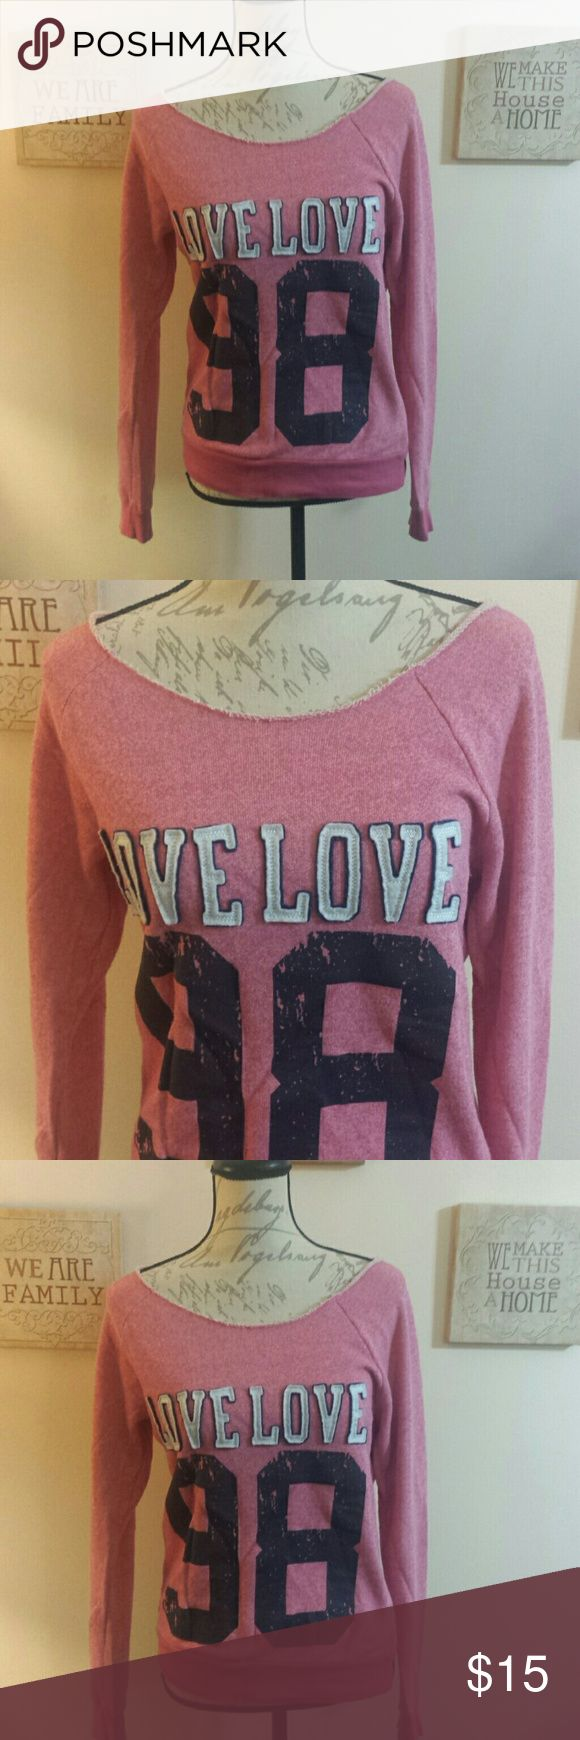 Brand new distressed sweatshirt Never worn adorable sweatshirt so cute bought at maceys .... soft comfortable sweatshirt  salmon pink color Tops Sweatshirts & Hoodies